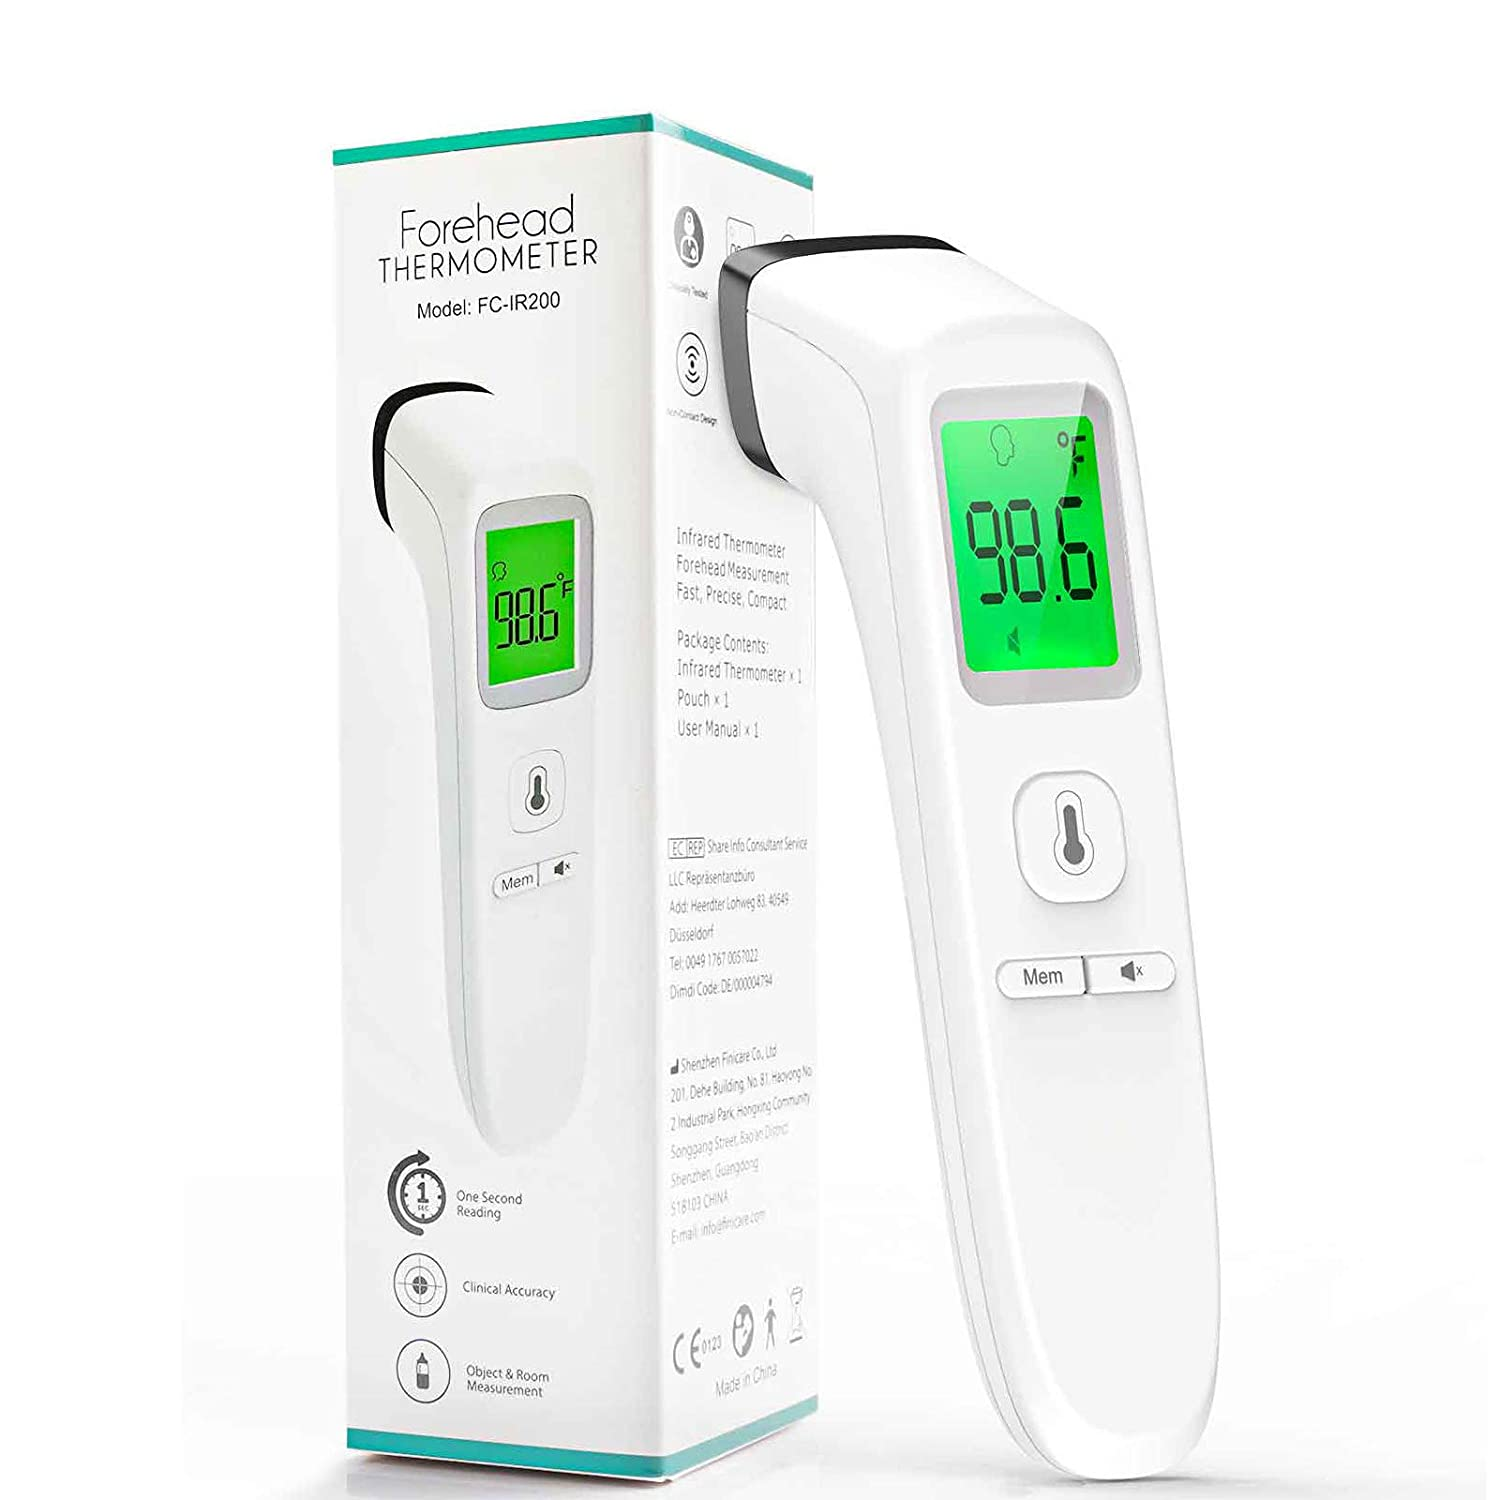 Forehead Thermometer Instant Reading Temperature Measurement Device for Baby Kids and Adults Indoor and Outdoor Non-Contact Infrared Digital Thermometer